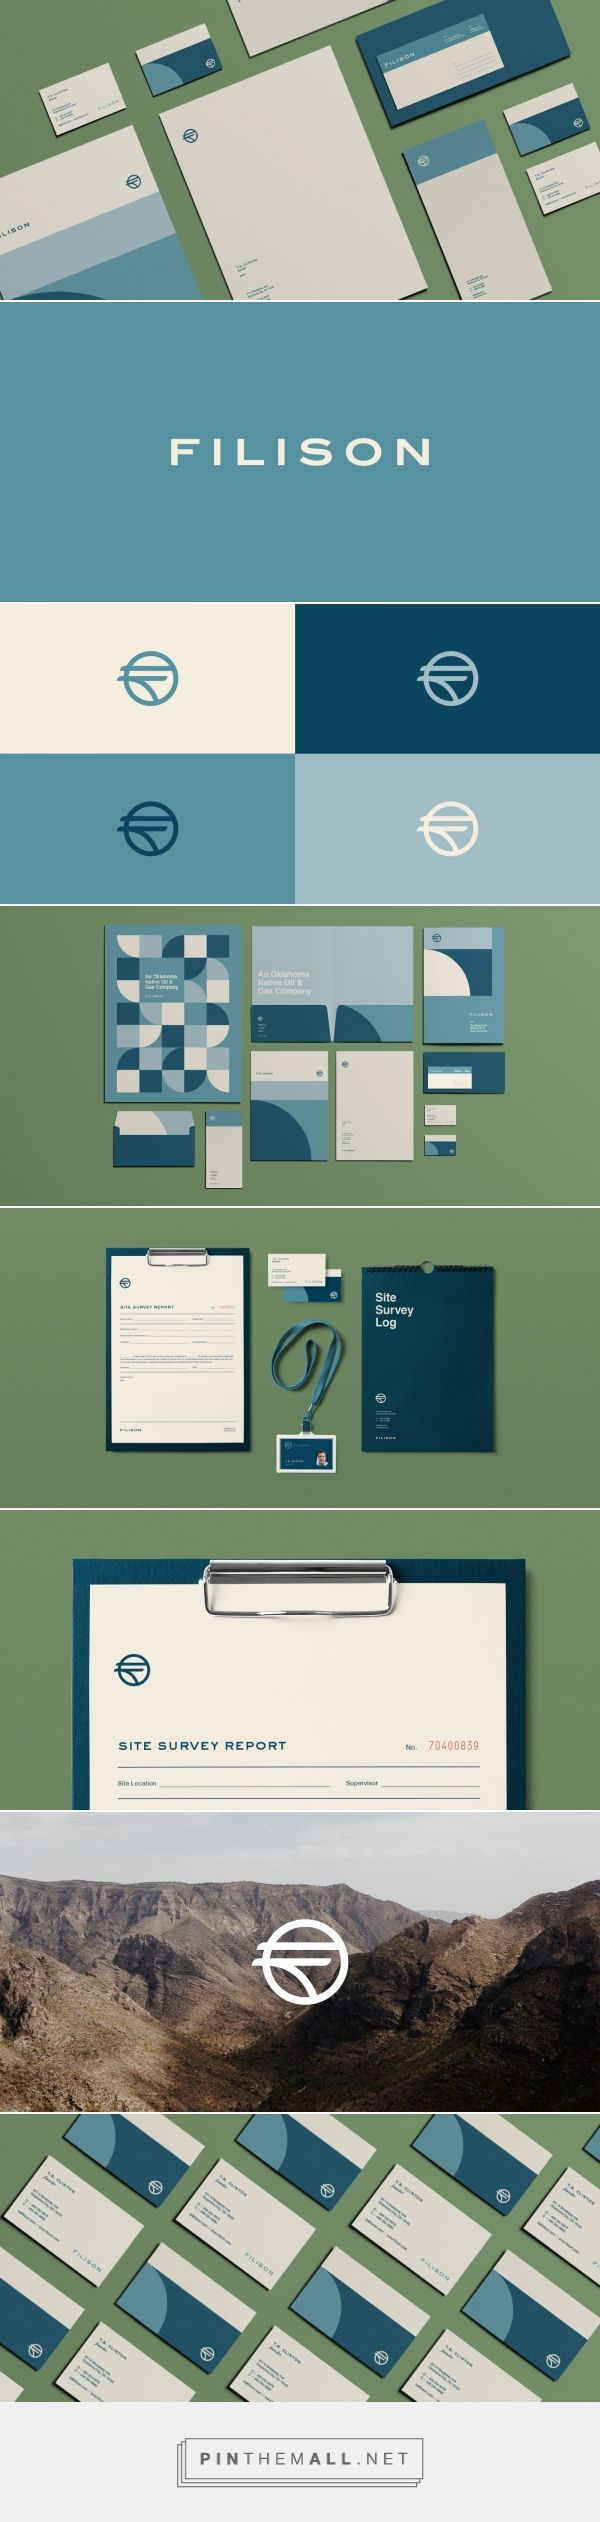 Filison Branding by Mast | Fivestar Branding – Design and Branding Agency & Inspiration Gallery